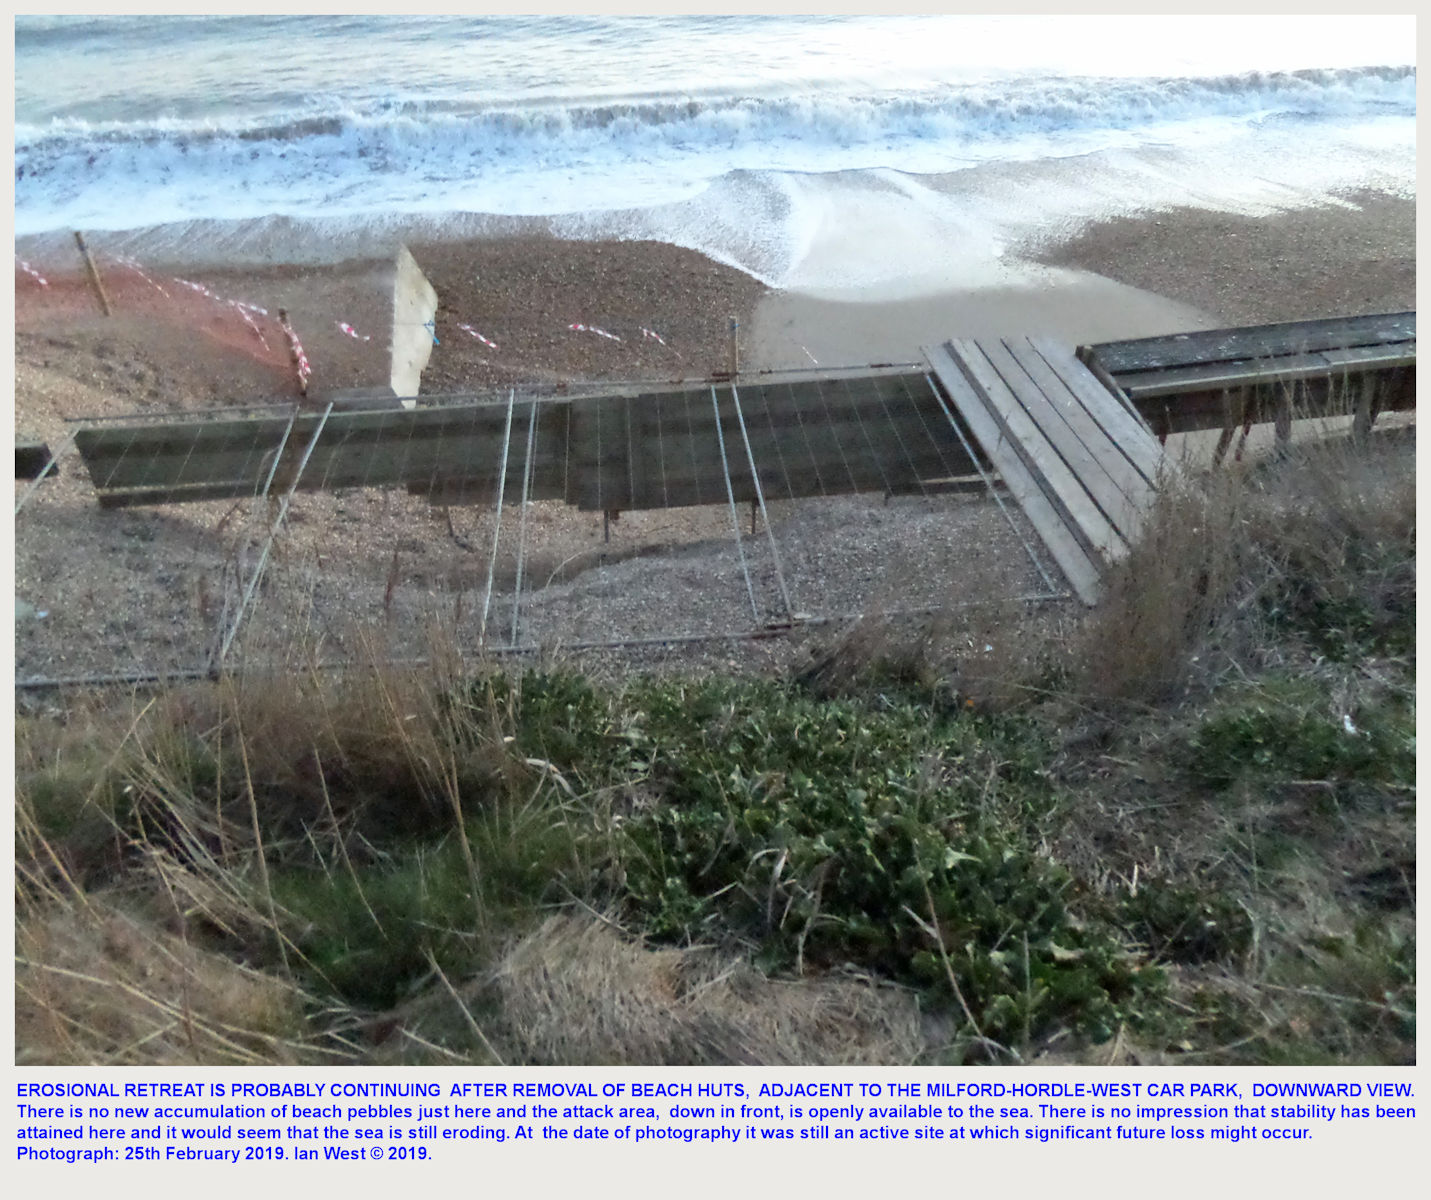 A view from above of recent sea erosion effects near some of the beach hut at Milford-on-Sea, Hordle Cliff (West) car park, 25th February 2019 - category huts